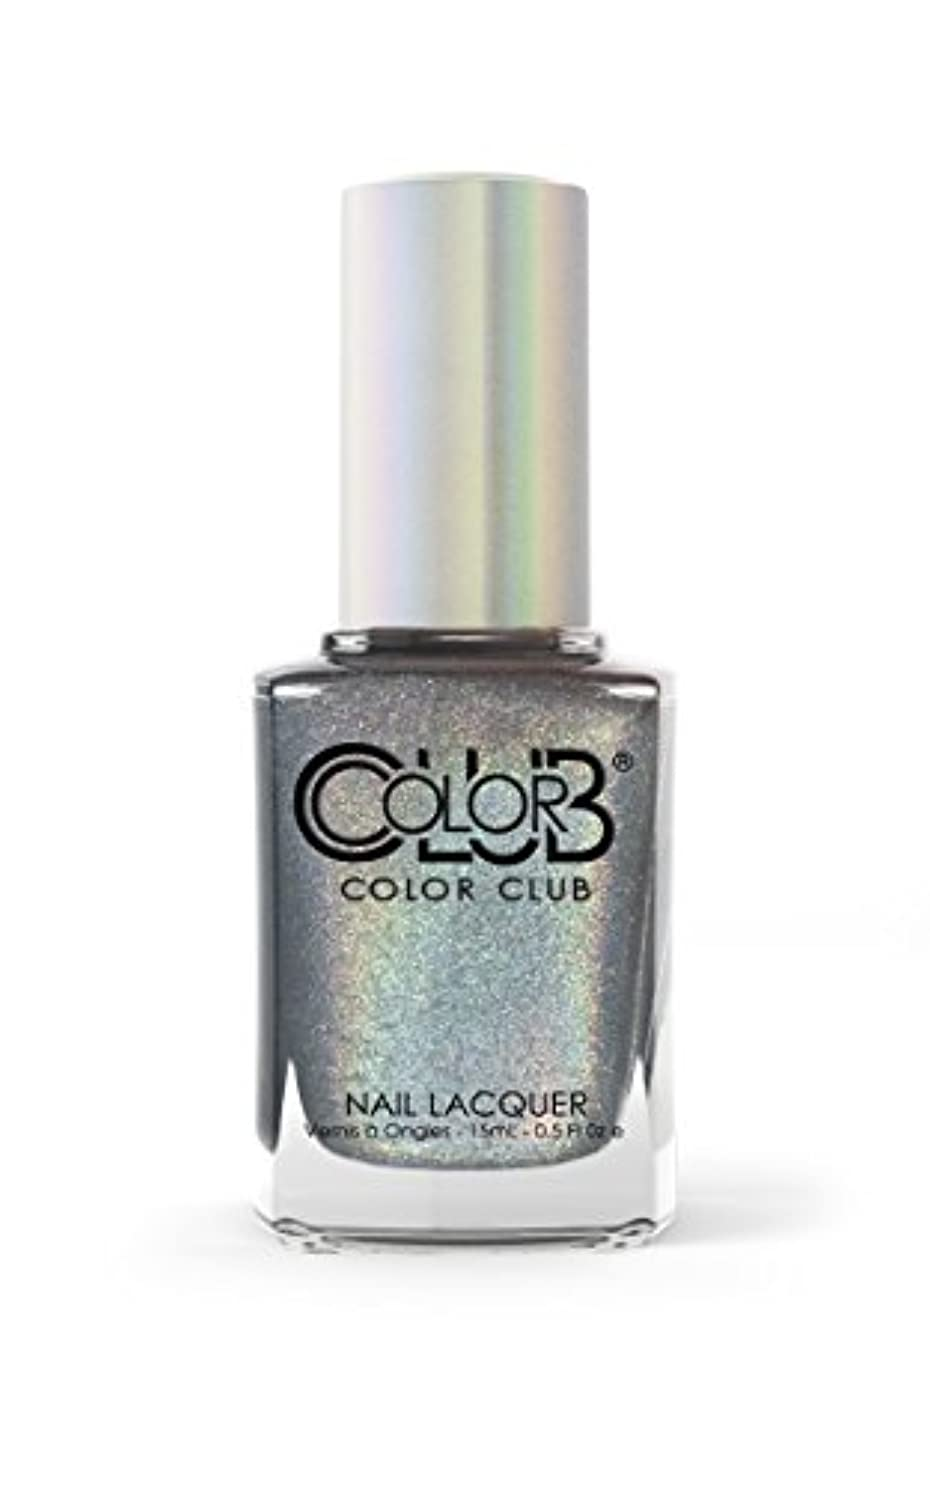 Color Club Nail Lacquer - Halo Chrome Collection - Beg, Borrow, and Steel - 15ml/0.5oz